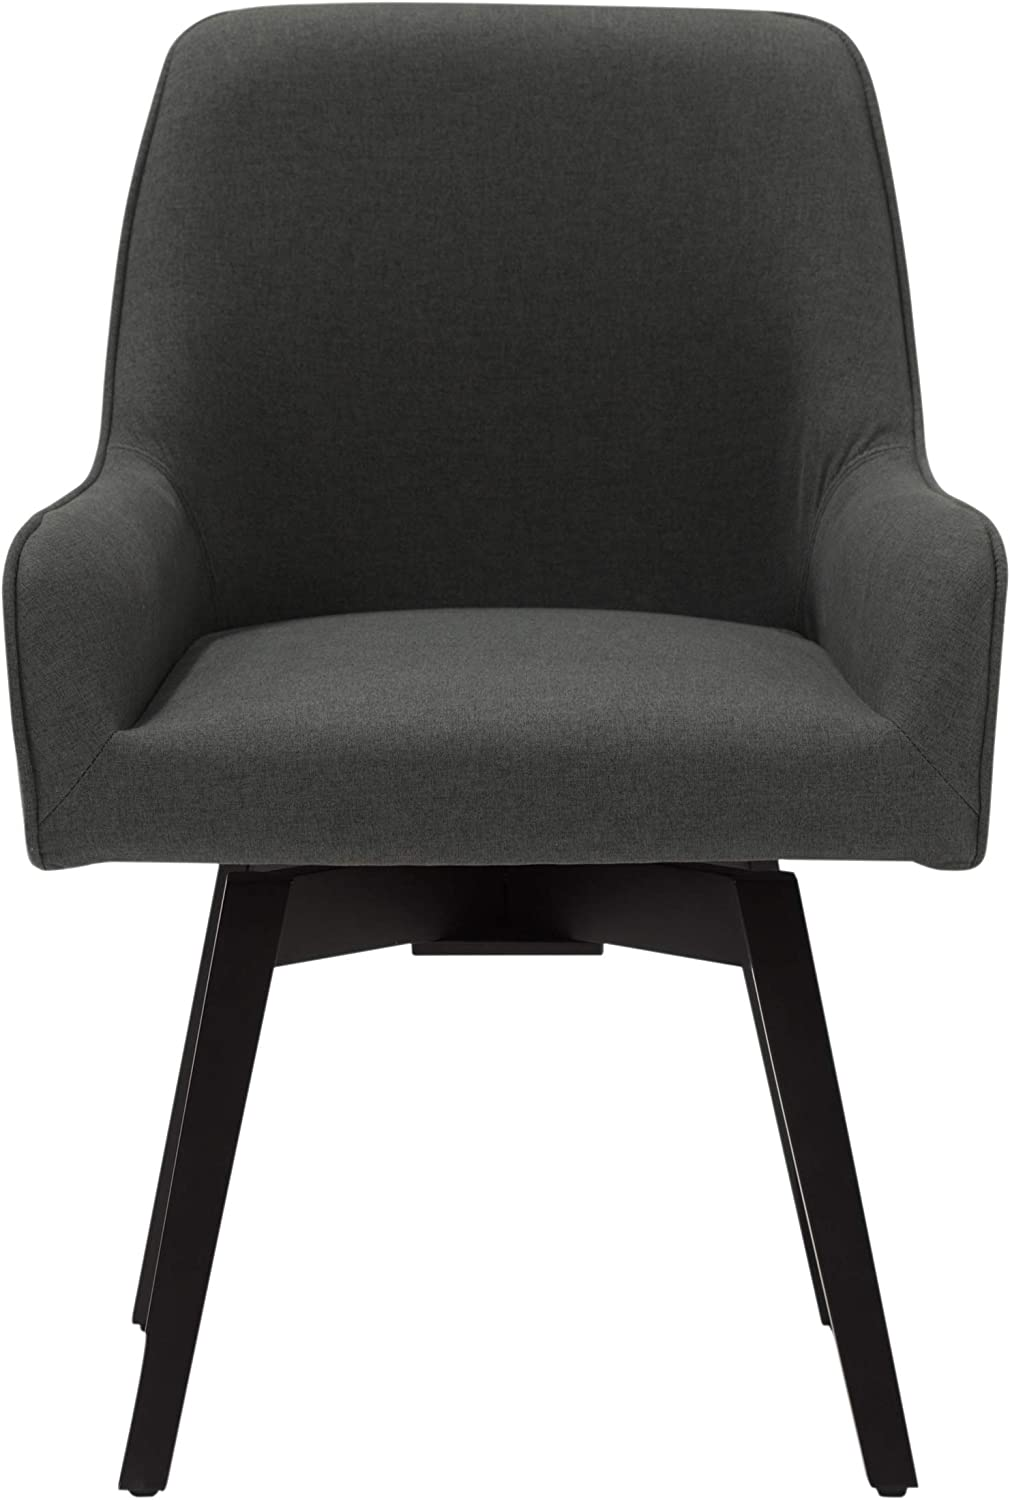 "Studio Designs Home Spire Contemporary Swivel, Rotating, Upholstered, Accent Dining/Office Chair with Arms and Wood Legs in Pewter Gray, 25.5"" W x 24"" D x 35.5"" H"